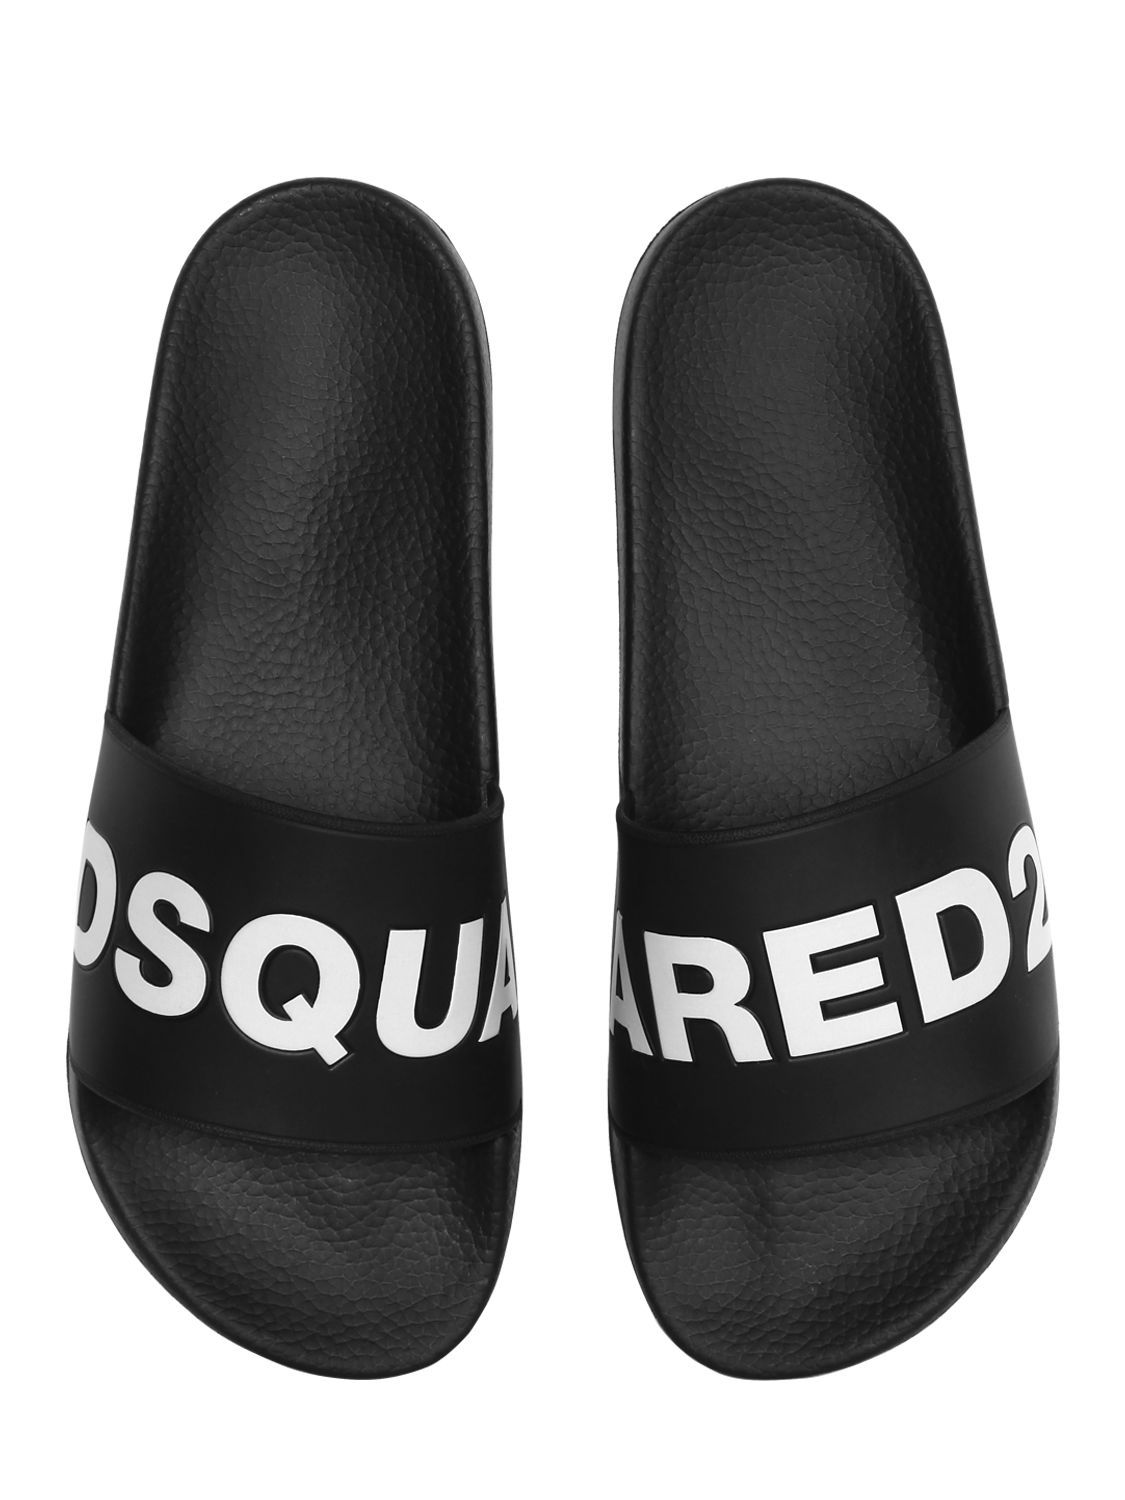 eb59c20b541a0 DSQUARED2 LOGO RUBBER SLIDE SANDALS.  dsquared2  shoes